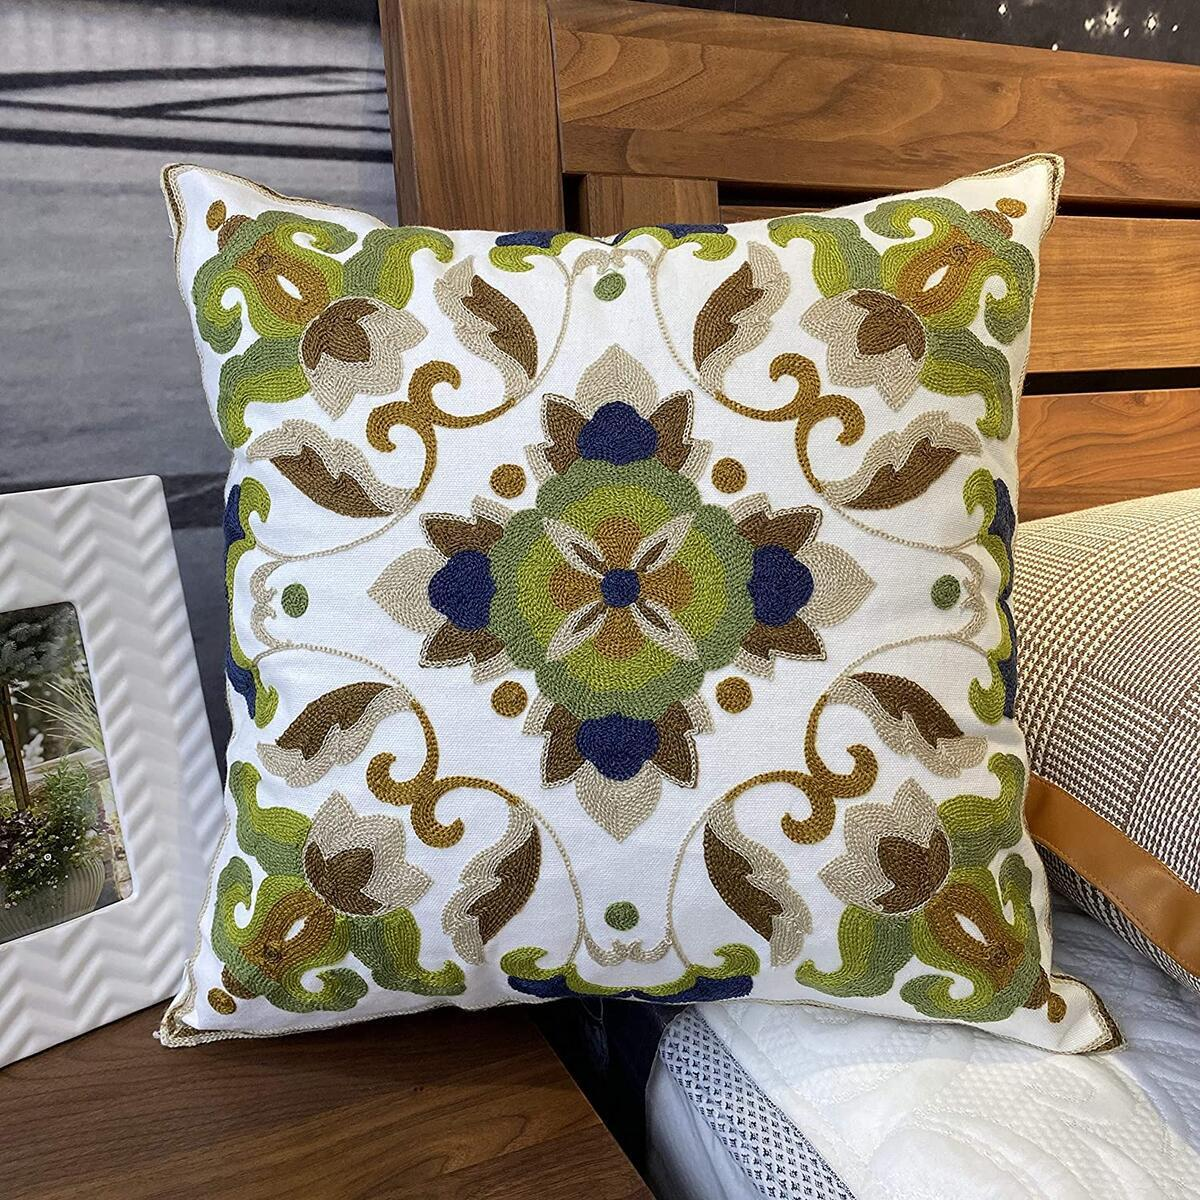 「THIS COLOR ONLY」Bohemia Exotic Embroidery Decorative Pillow Cover 18x18